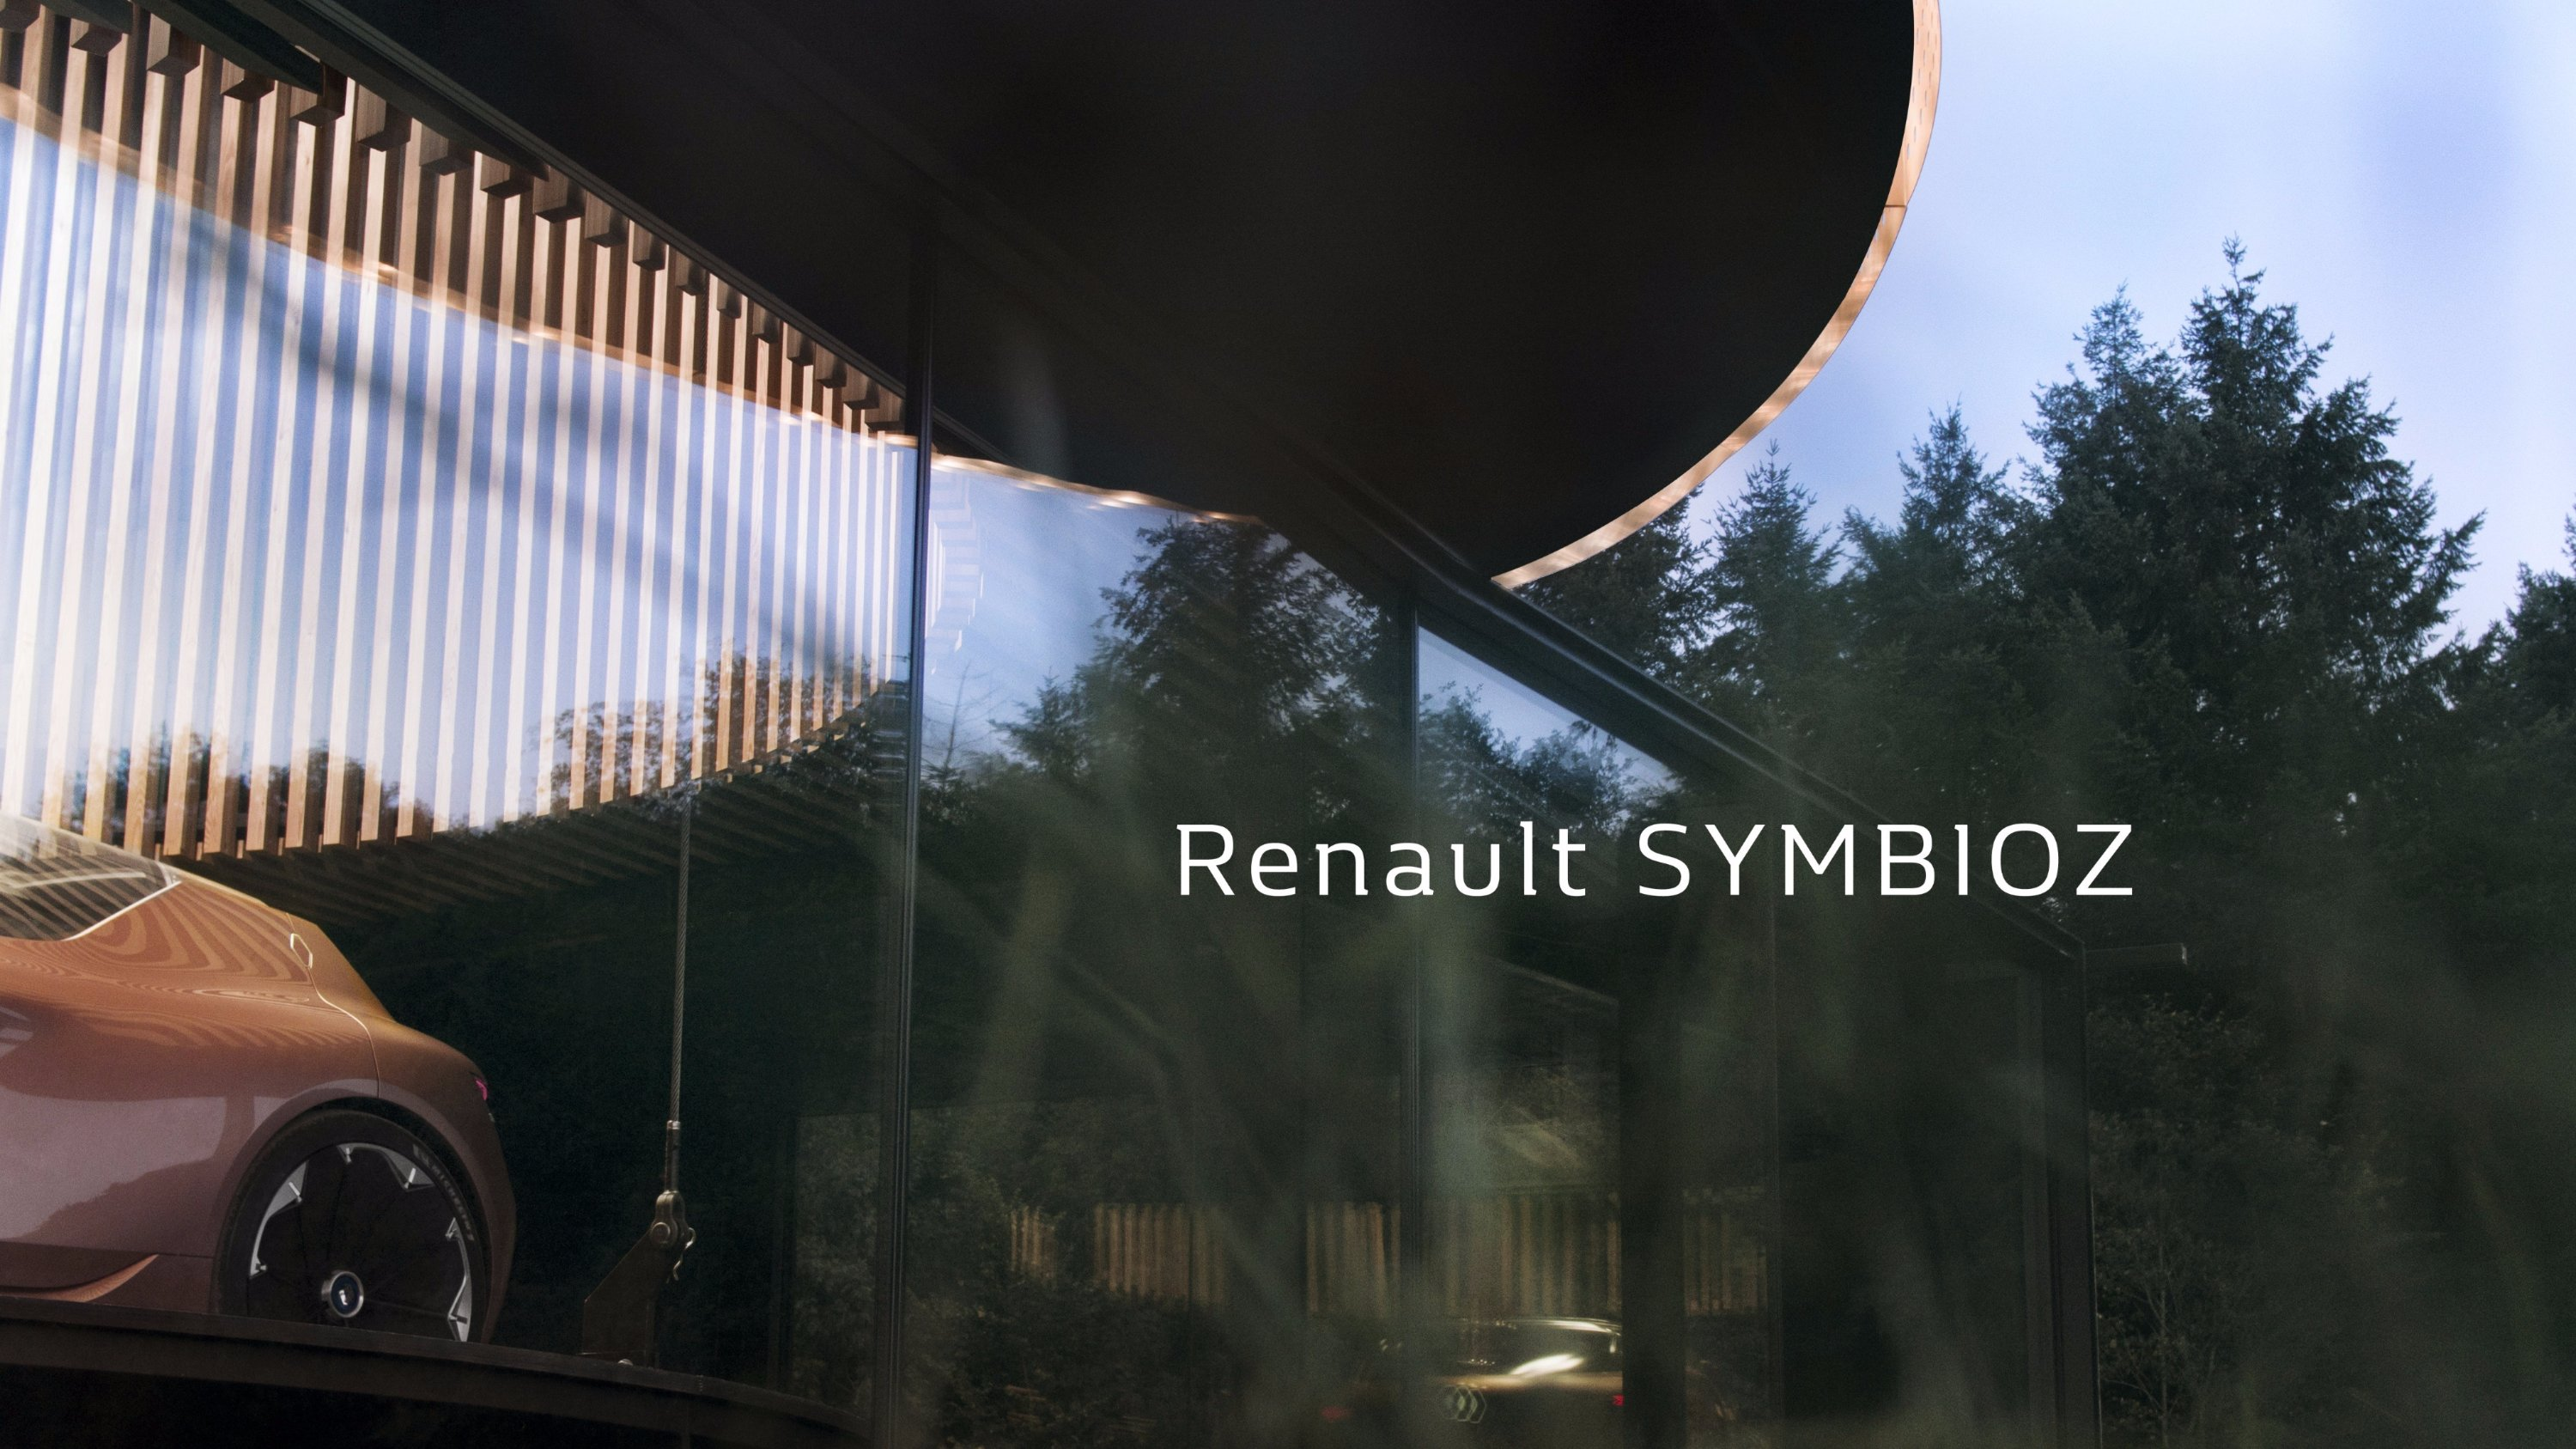 Renault SYMBIOZ: the vision of the future of mobility